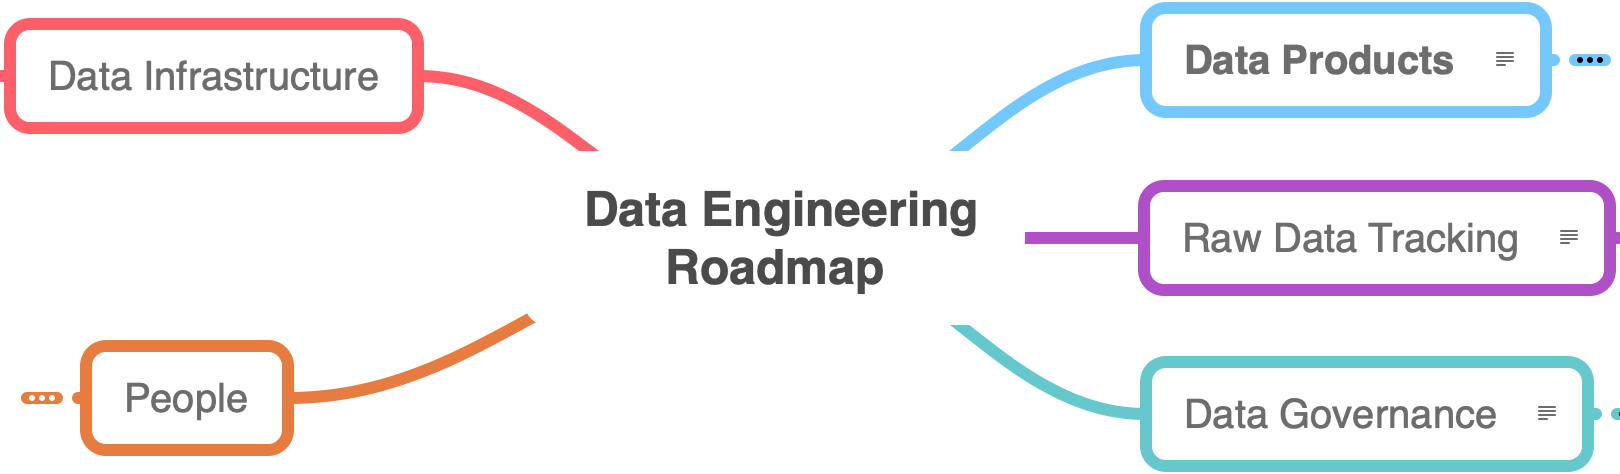 /assets/data_team_roadmap/Data-Roadmap-Collapsed.png